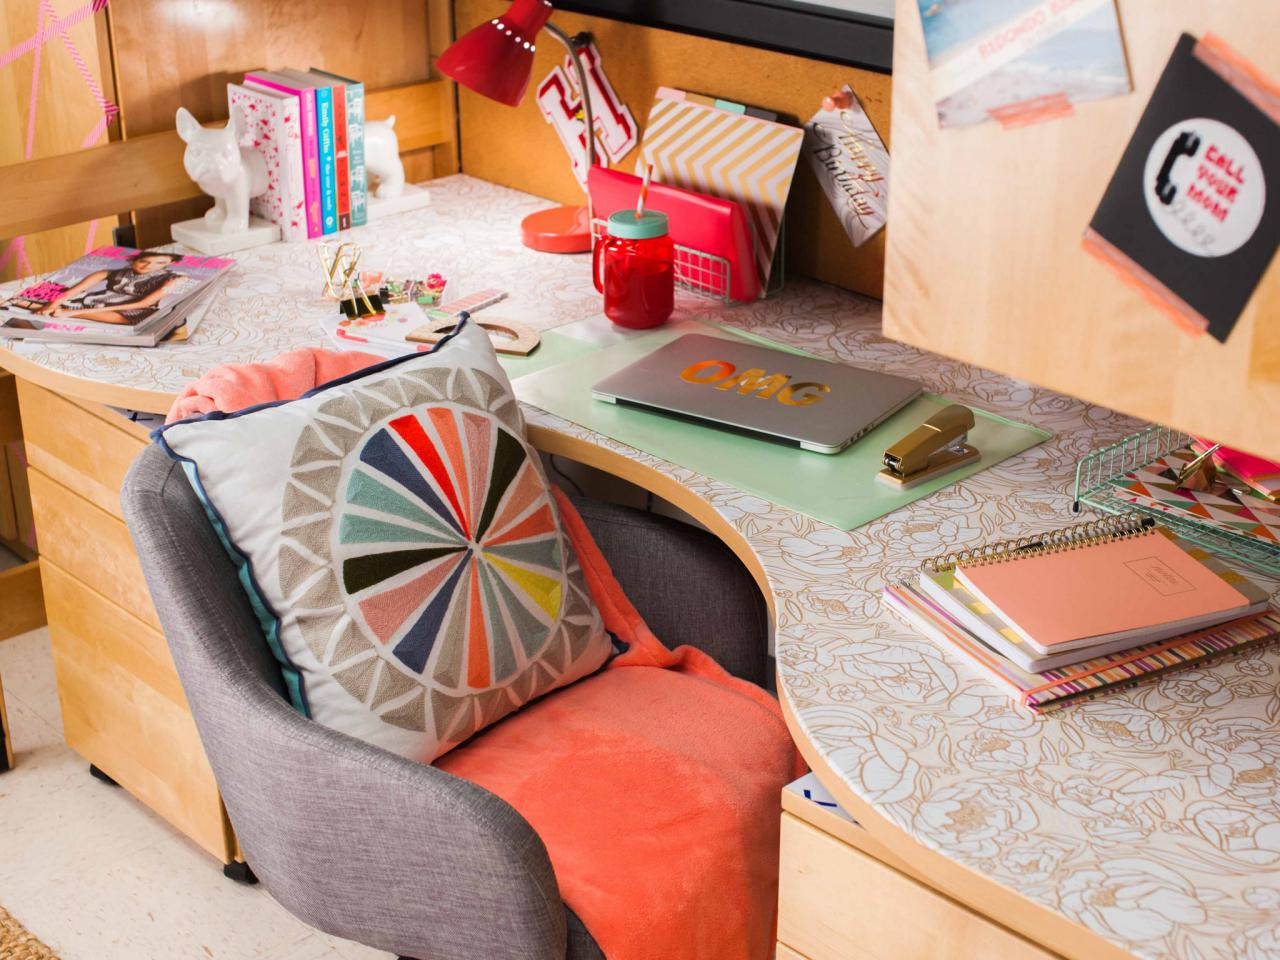 Dorm Room Takeover Desk Decoration With Salmon Throw Blanket Wall Paper Desk Top And Colorful School Supplies